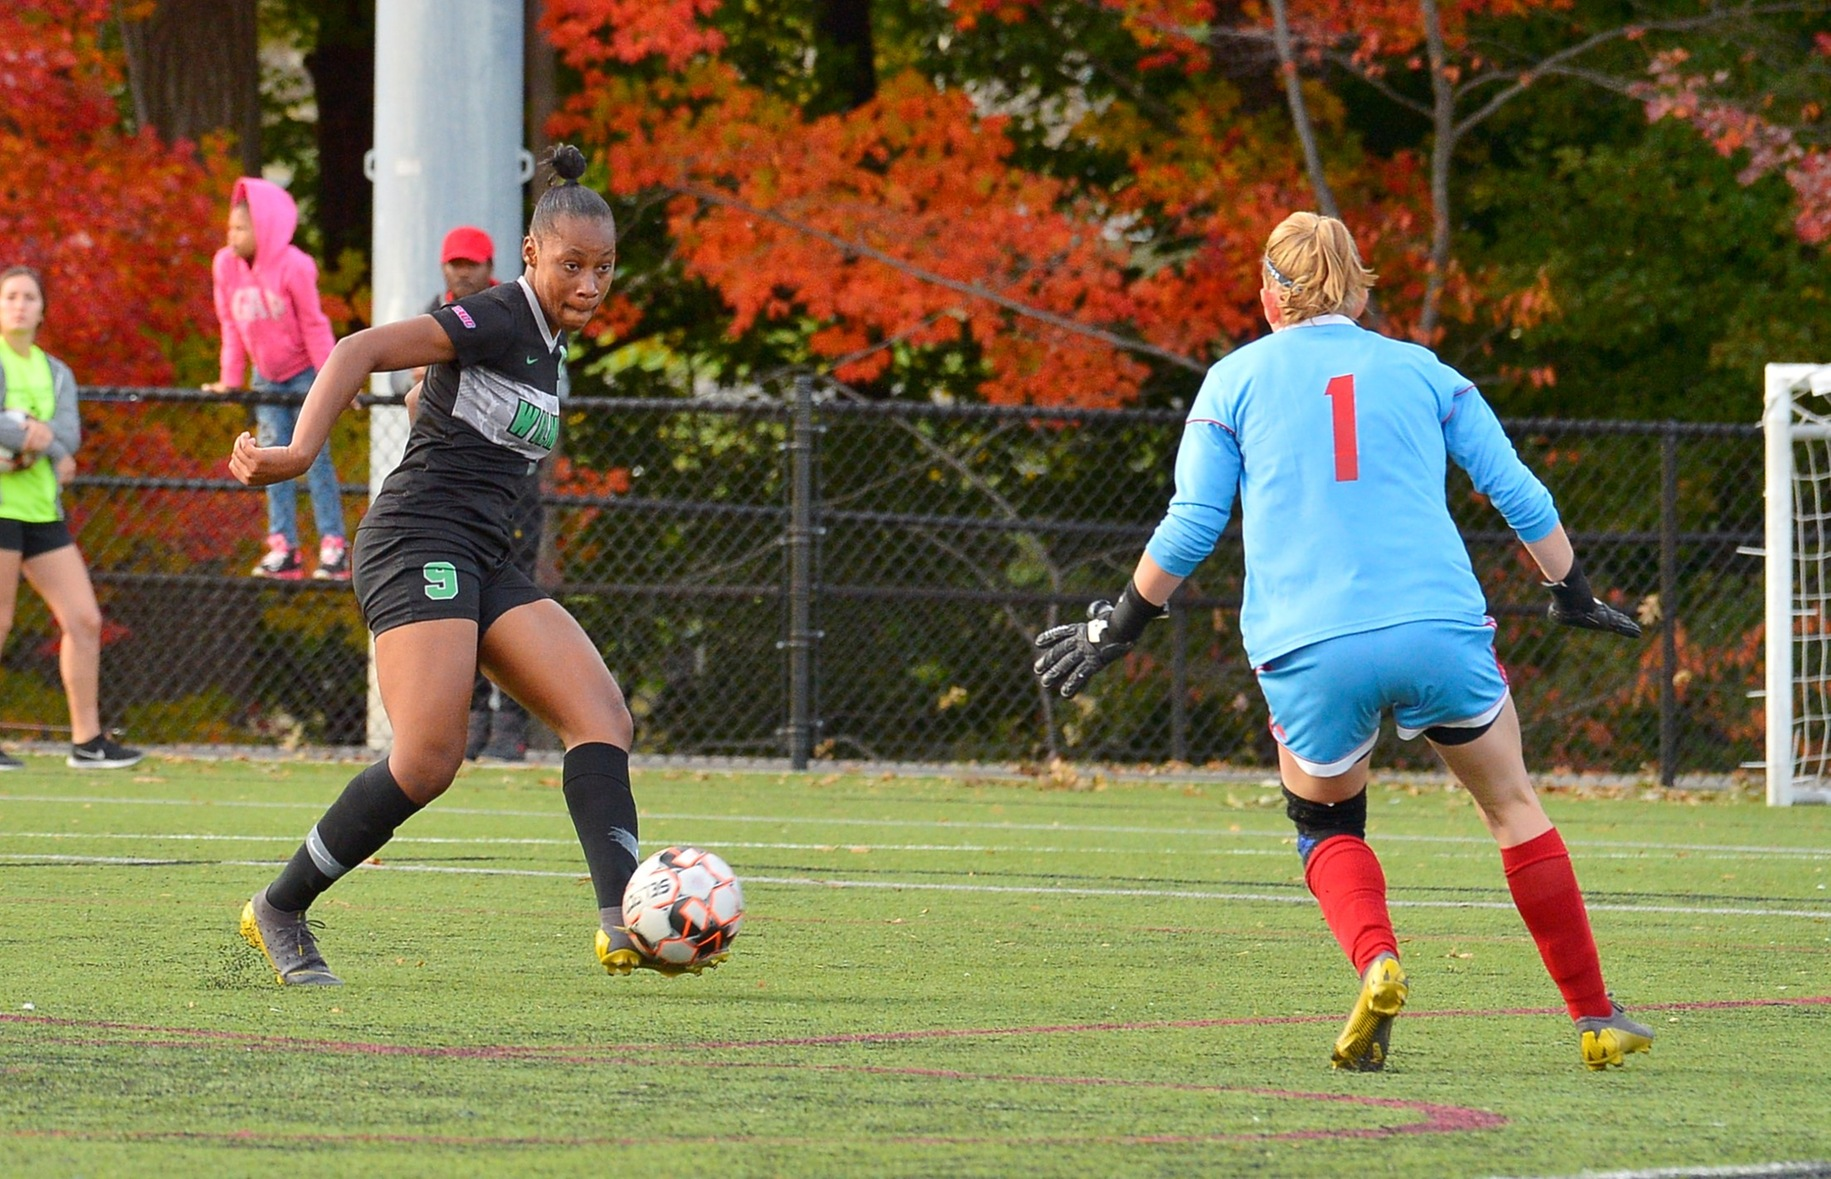 Photo of Rockesha Dayes scoring the game-winner in the 85th minute. Copyright 2019; Wilmington University. All rights reserved. Photo by James Jones. October 26, 2019 at Nyack.